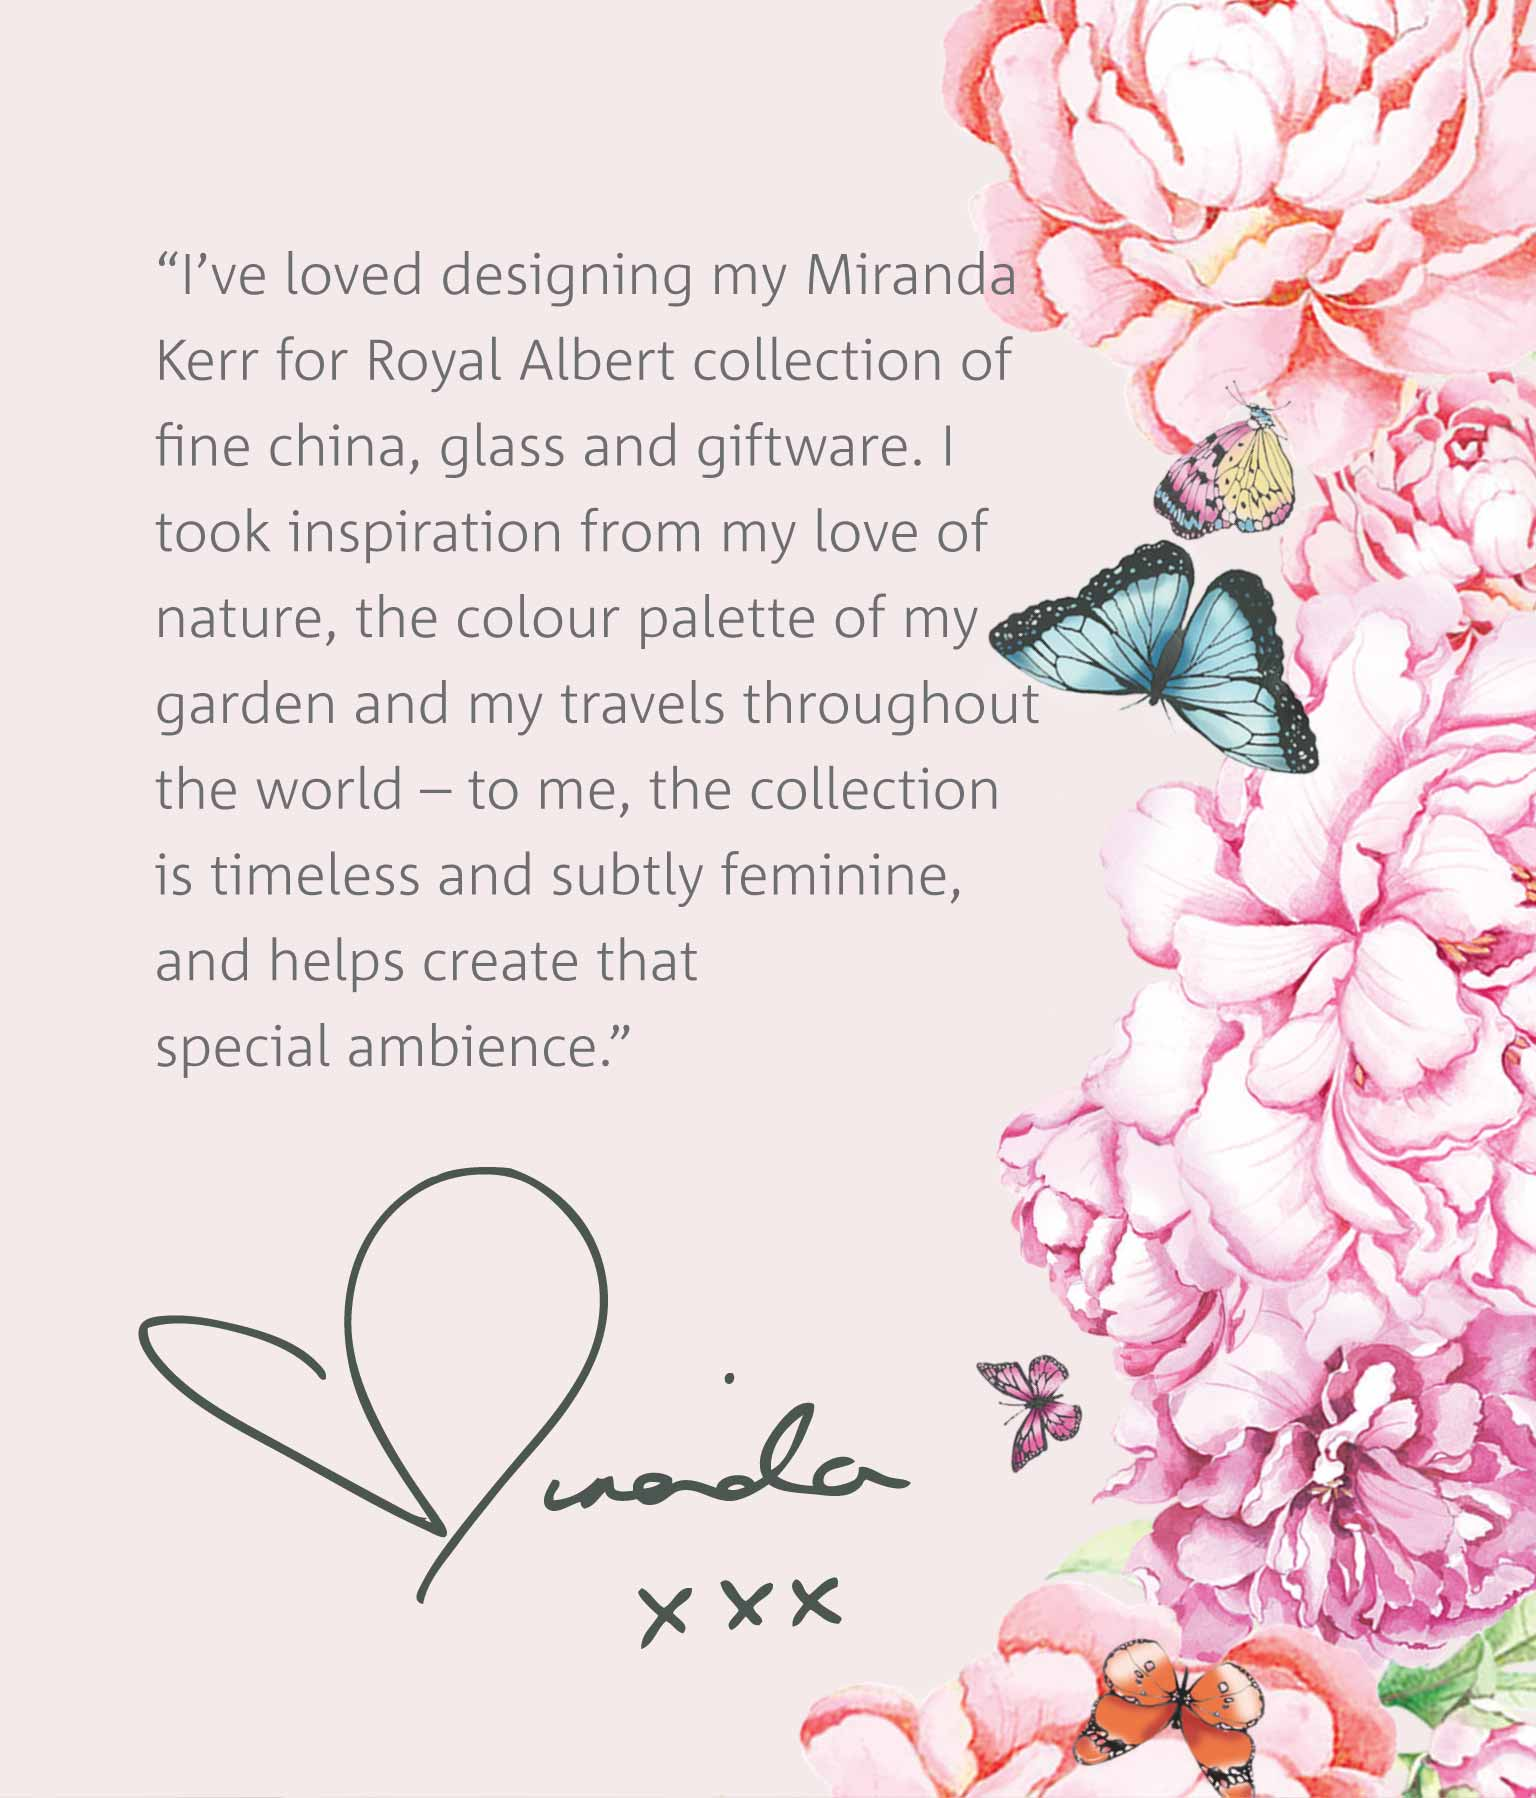 I've loved designing my Miranda Kerr for Royal Albert collection of fine china, glass and giftware. I took inspiration from my love of nature, the colour palette of my garden and my travels throughout the world – to me, the collection is timeless and subtly feminine, and helps create that special ambience. - Miranda xxx